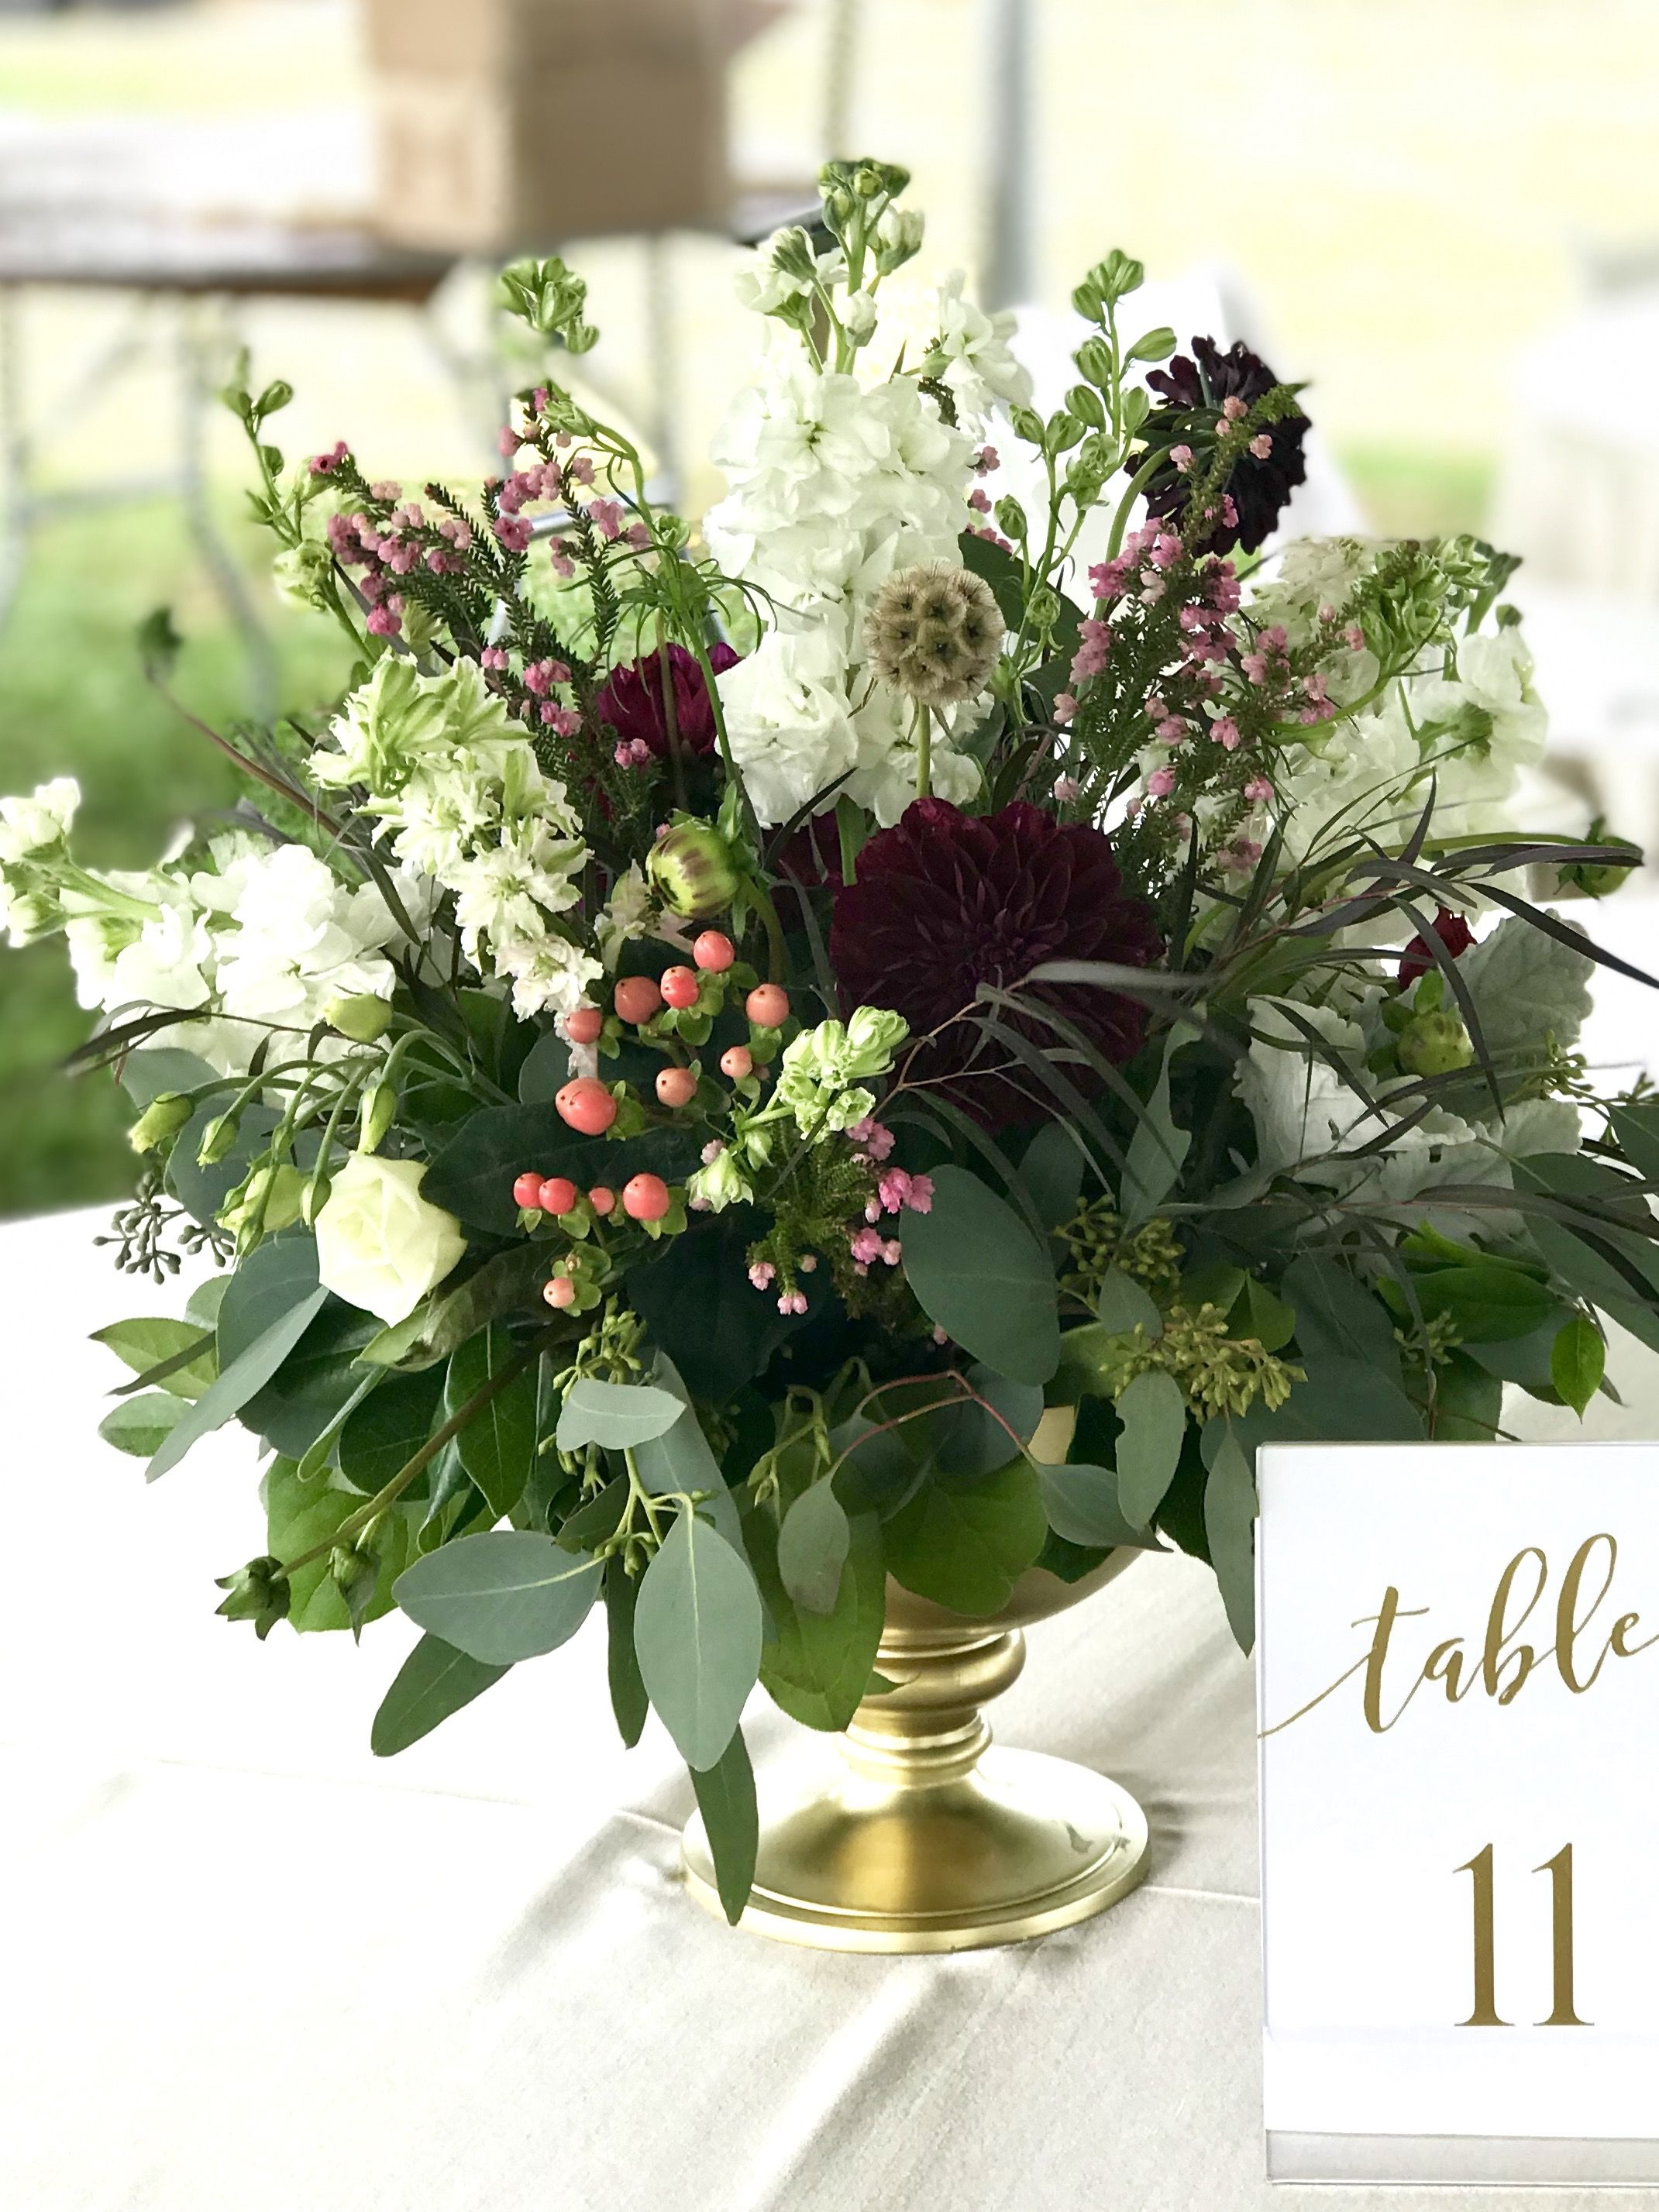 Wedding decorations and ideas december 2018 Marsala and blush centerpiece by Jeanie Gorrell Floral Design